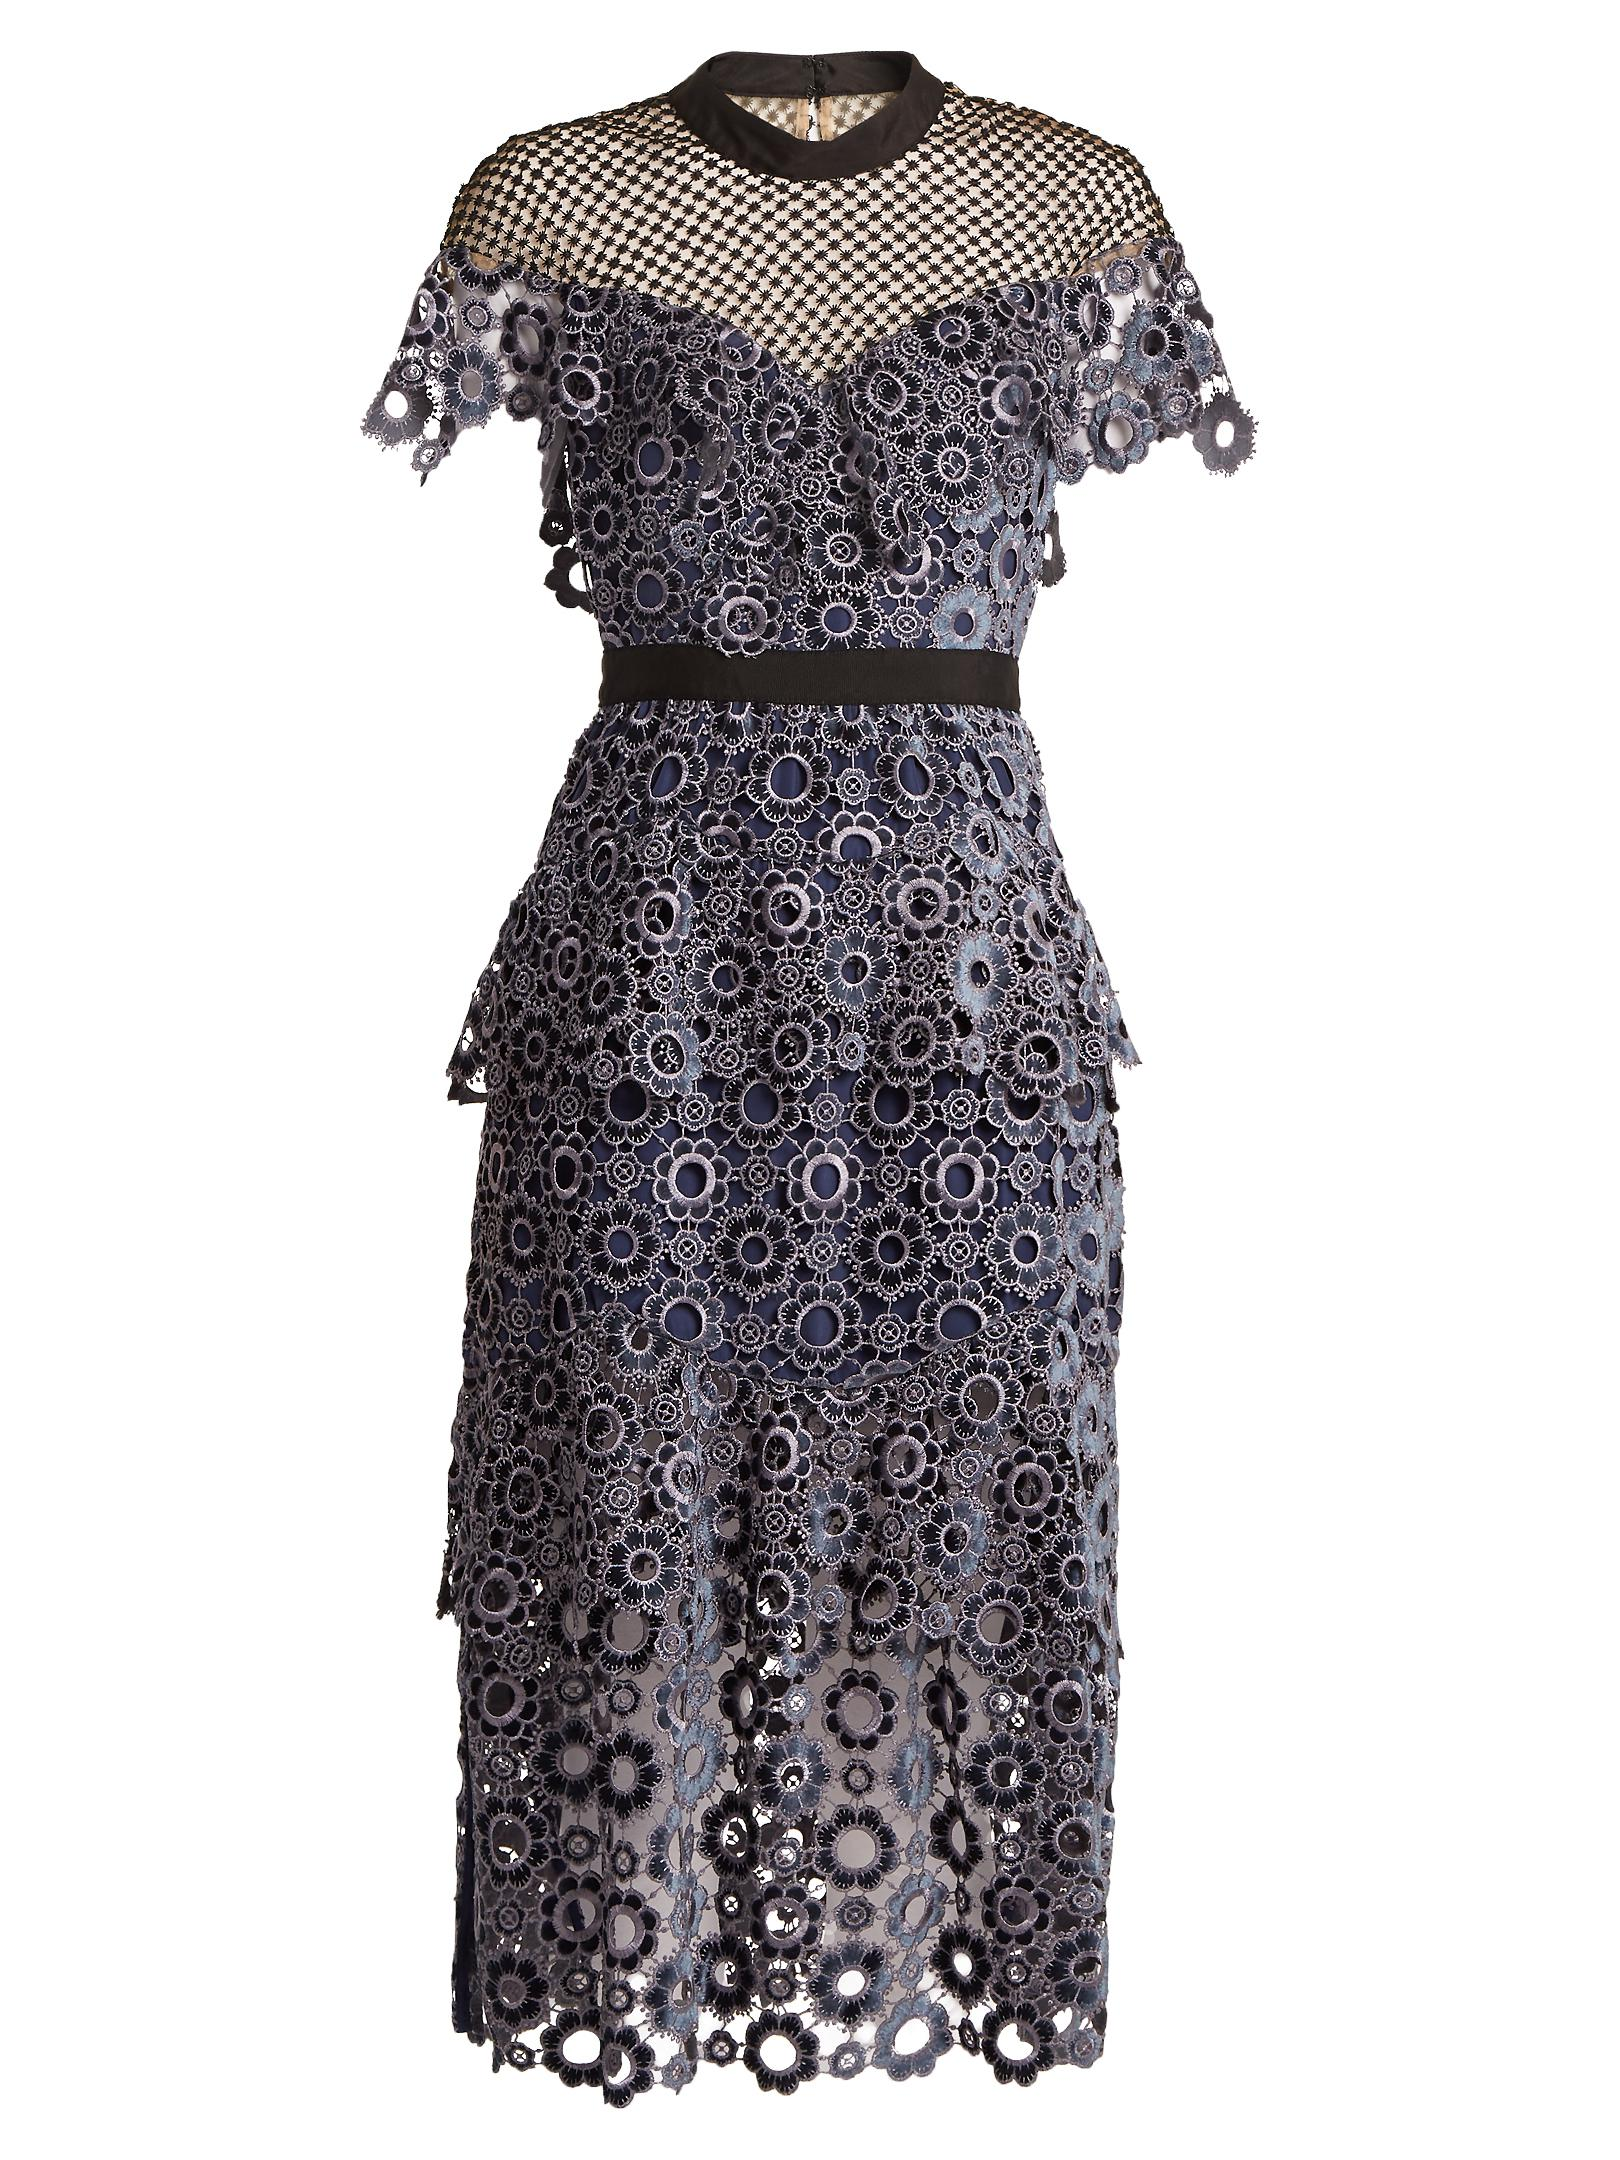 440e81dde499 Self-Portrait Cut-out Ditzy-lace And Floral-embroidered Dress in ...